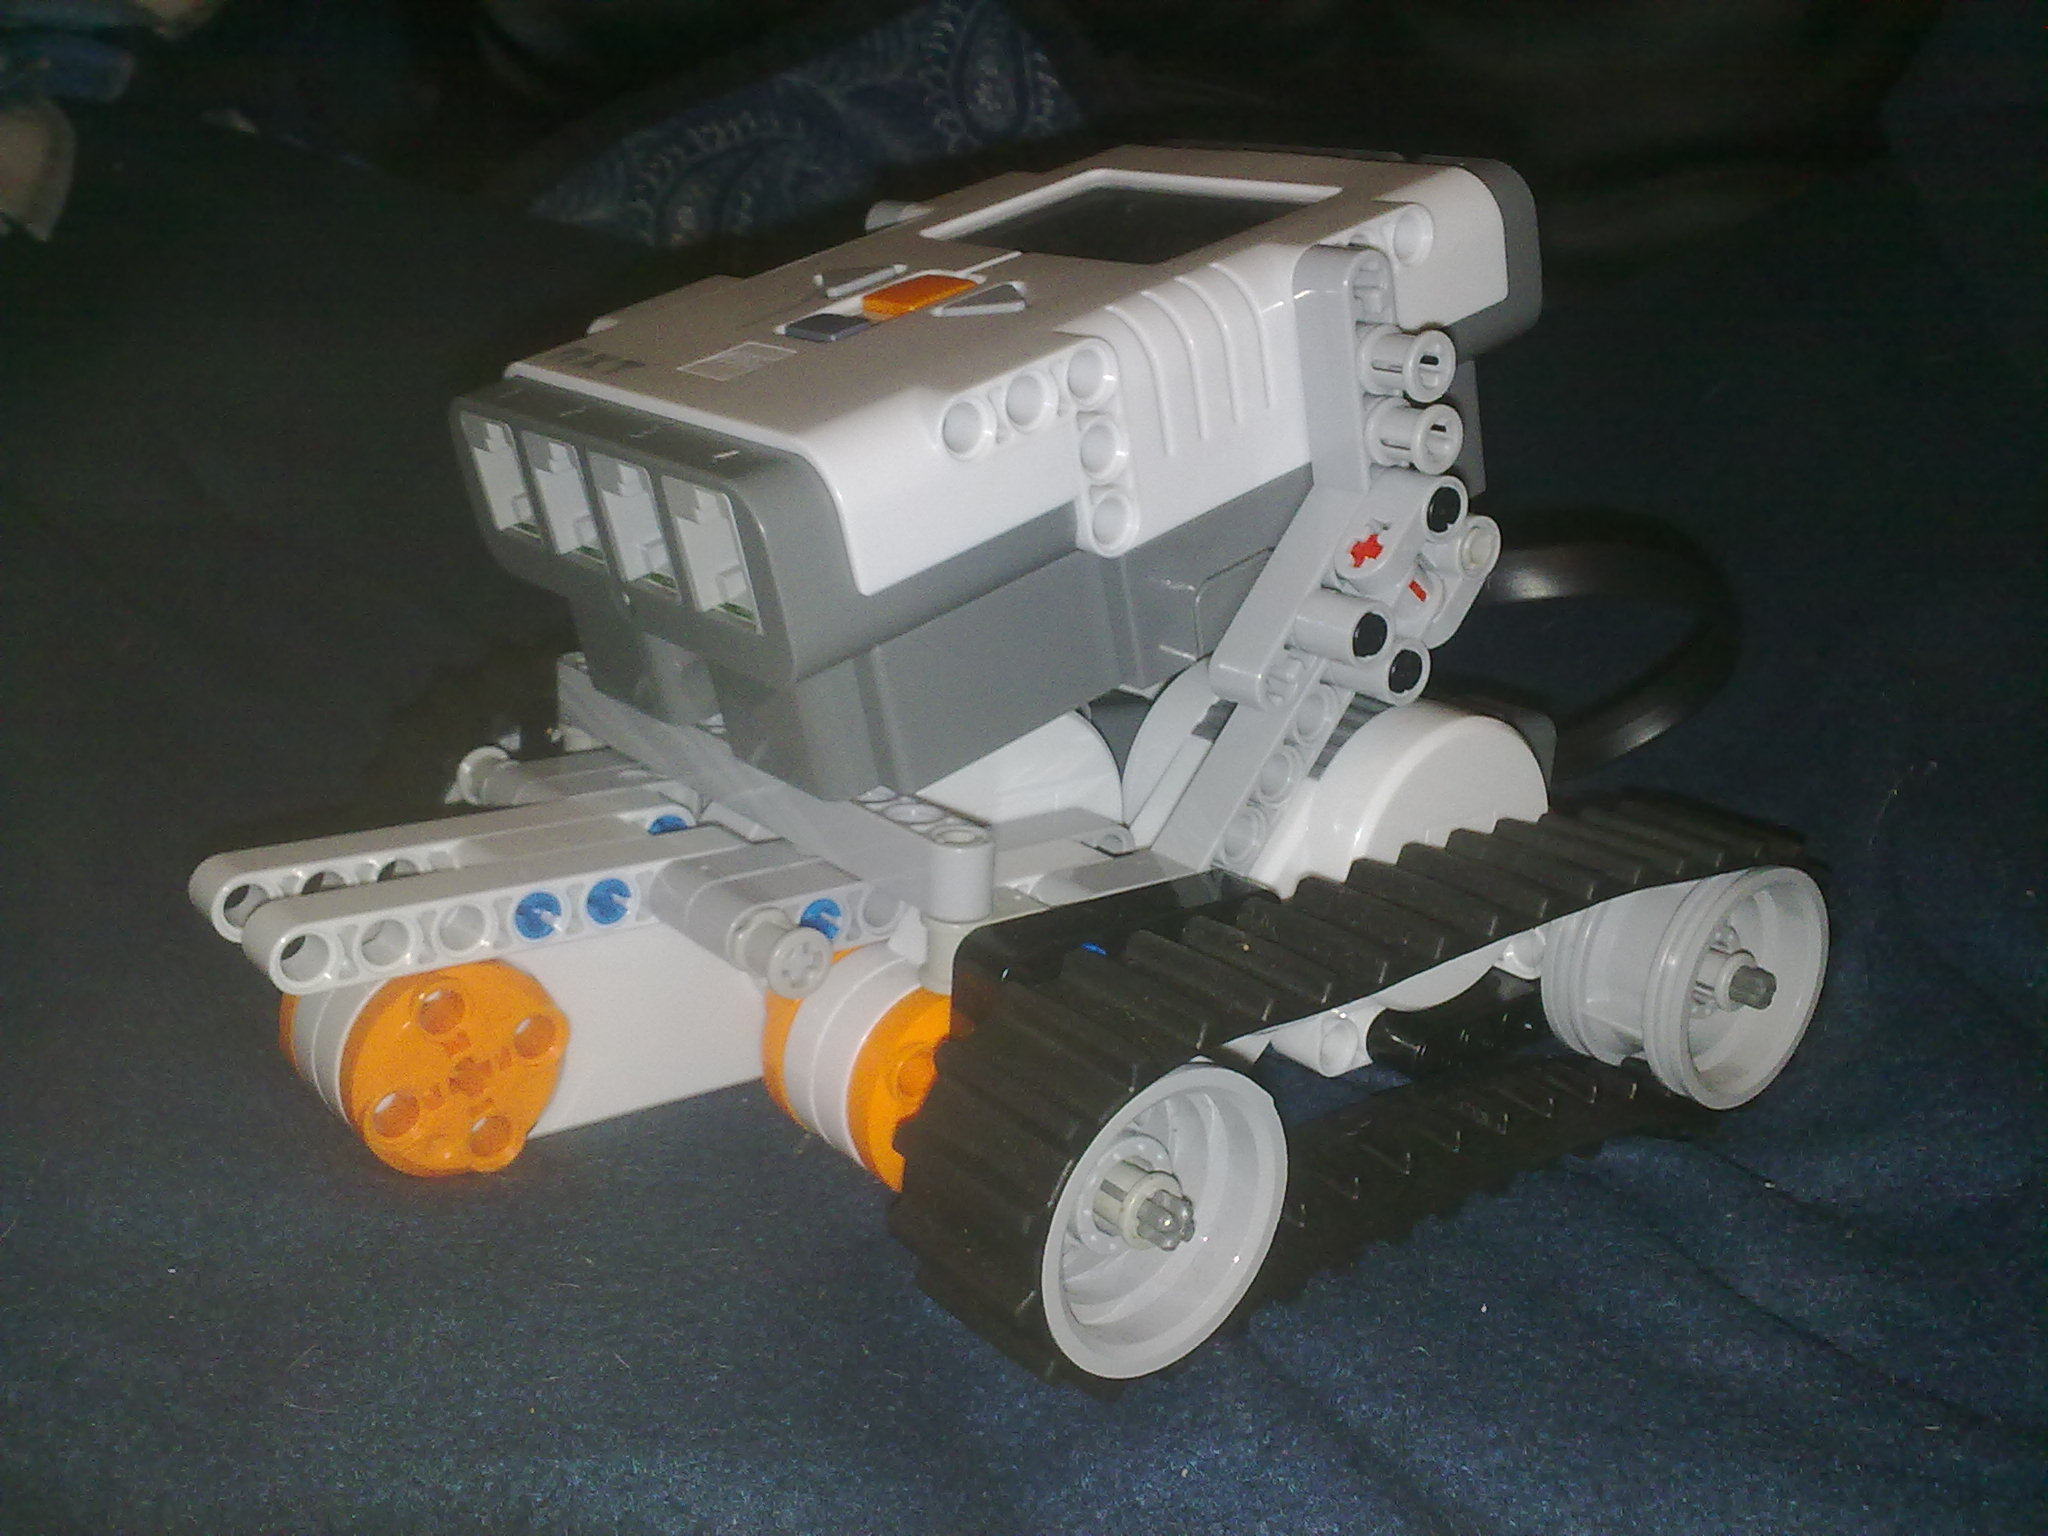 lego mindstorms drawing robot instructions